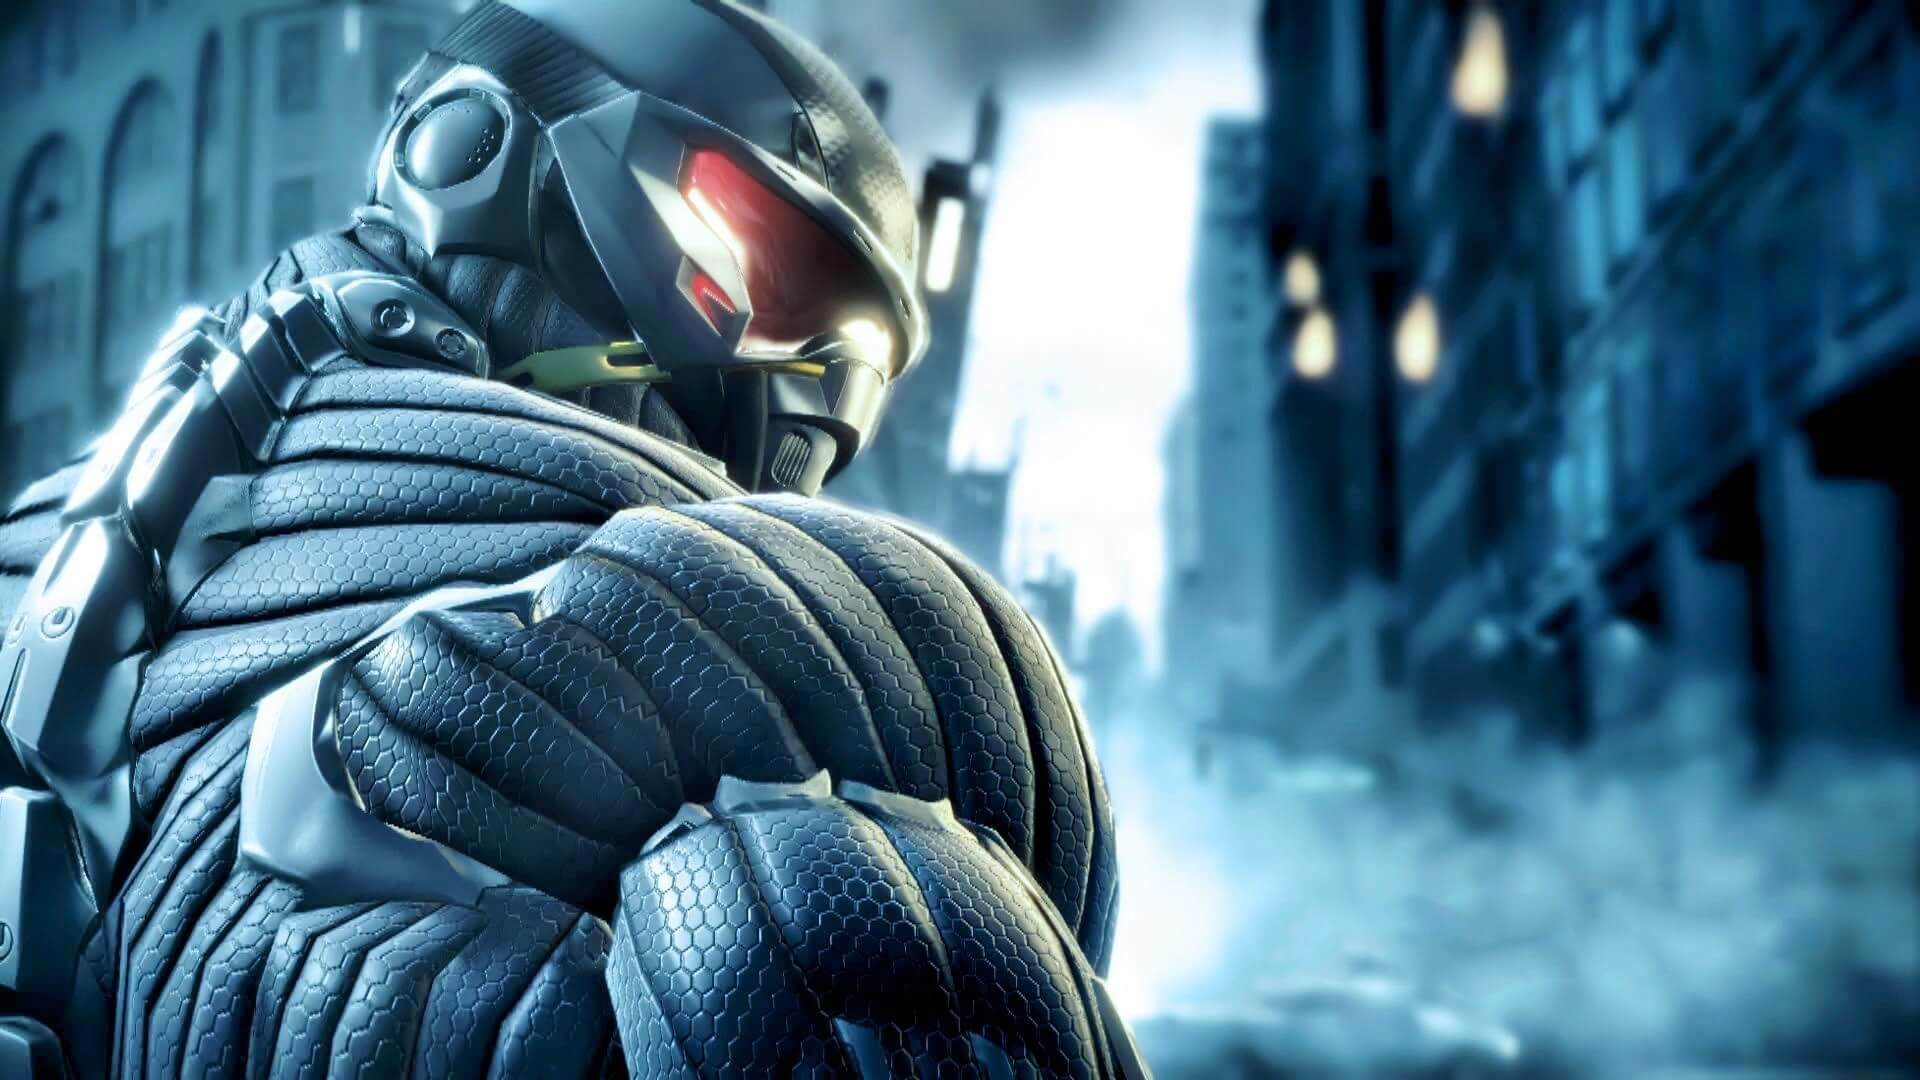 Crysis 4 has been announced, powered by Unreal Engine 4, will be exclusive to Epic Games Store